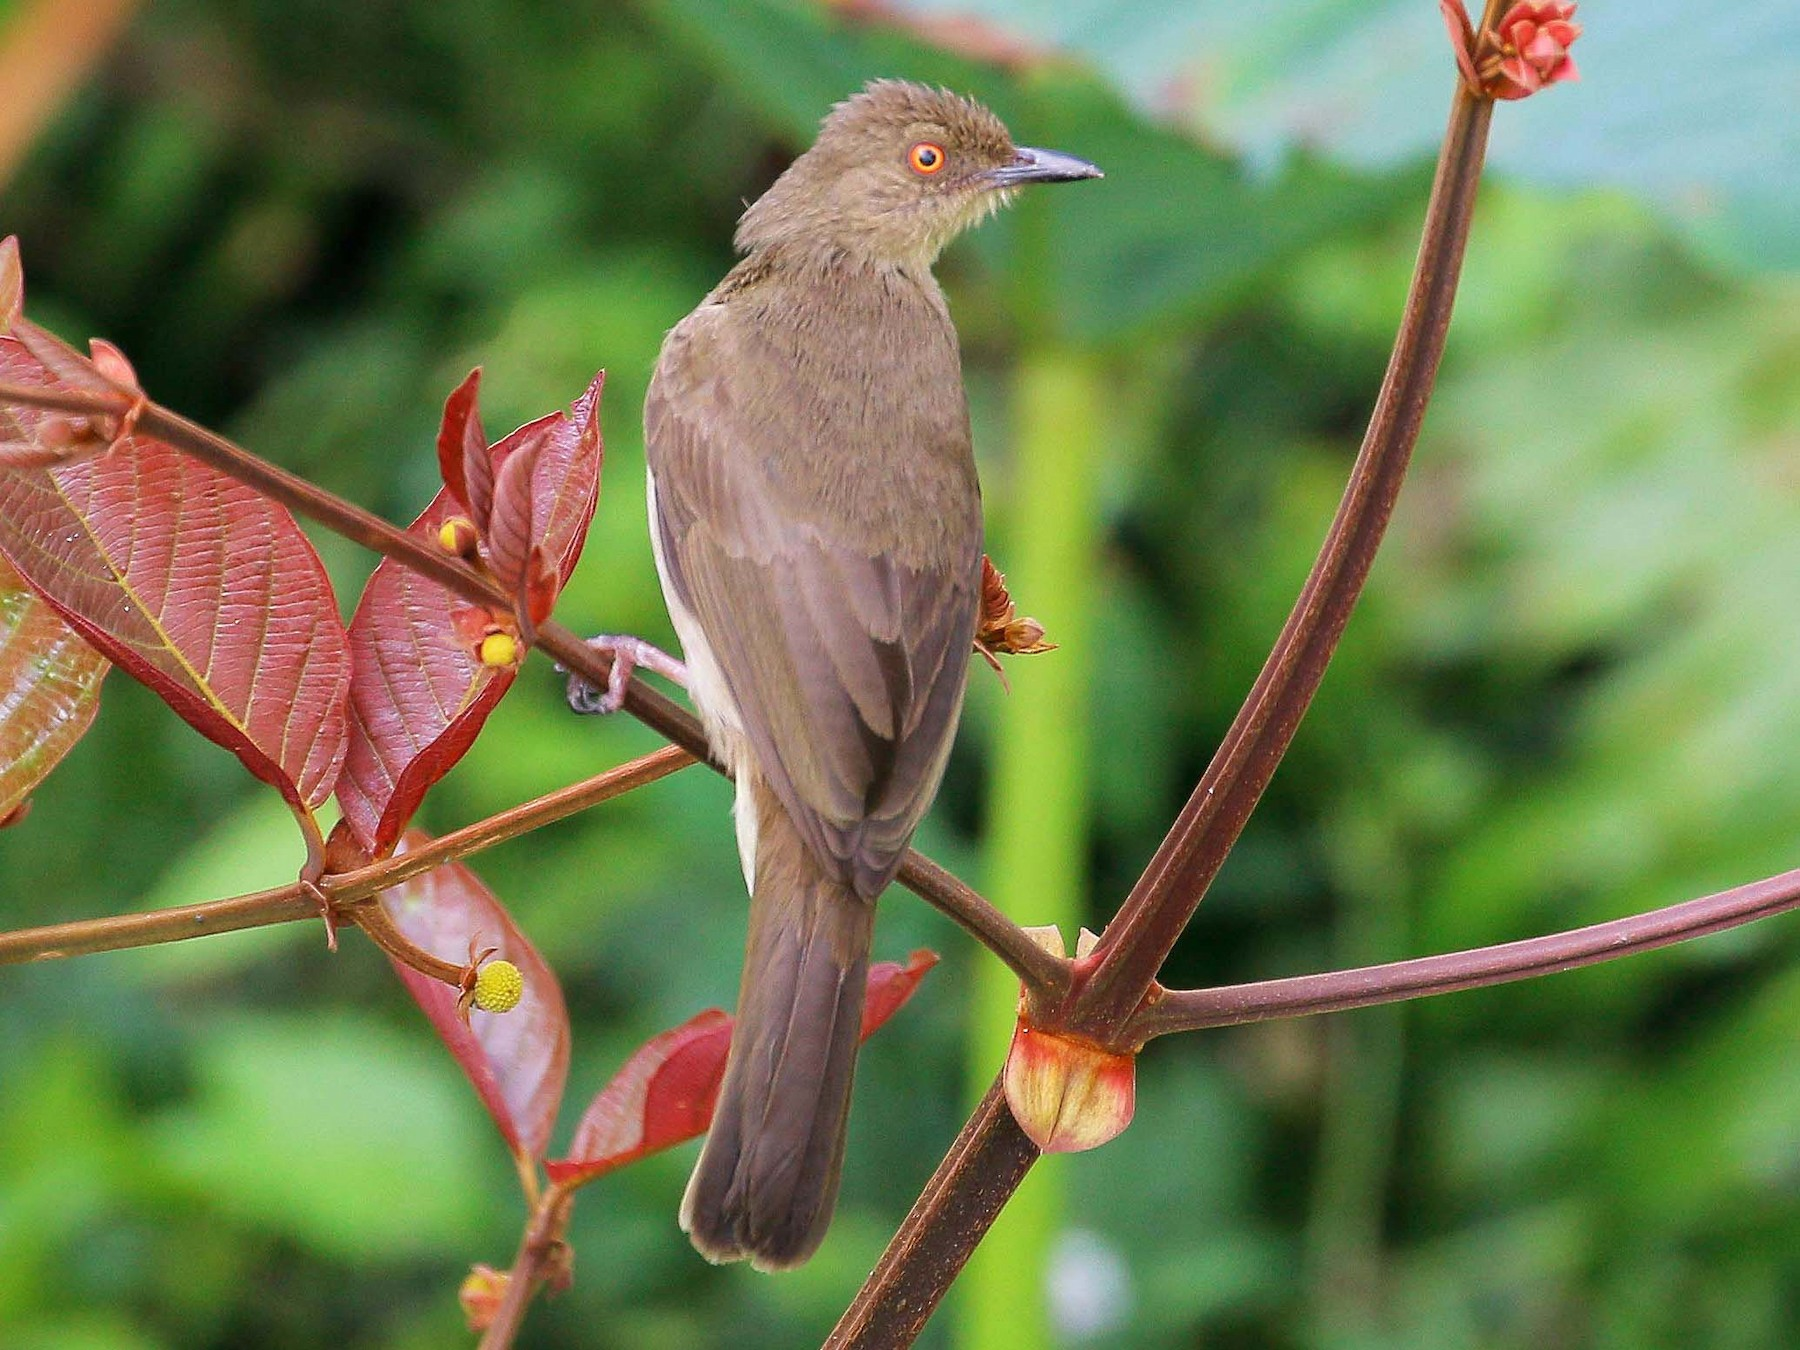 Red-eyed Bulbul - Neoh Hor Kee